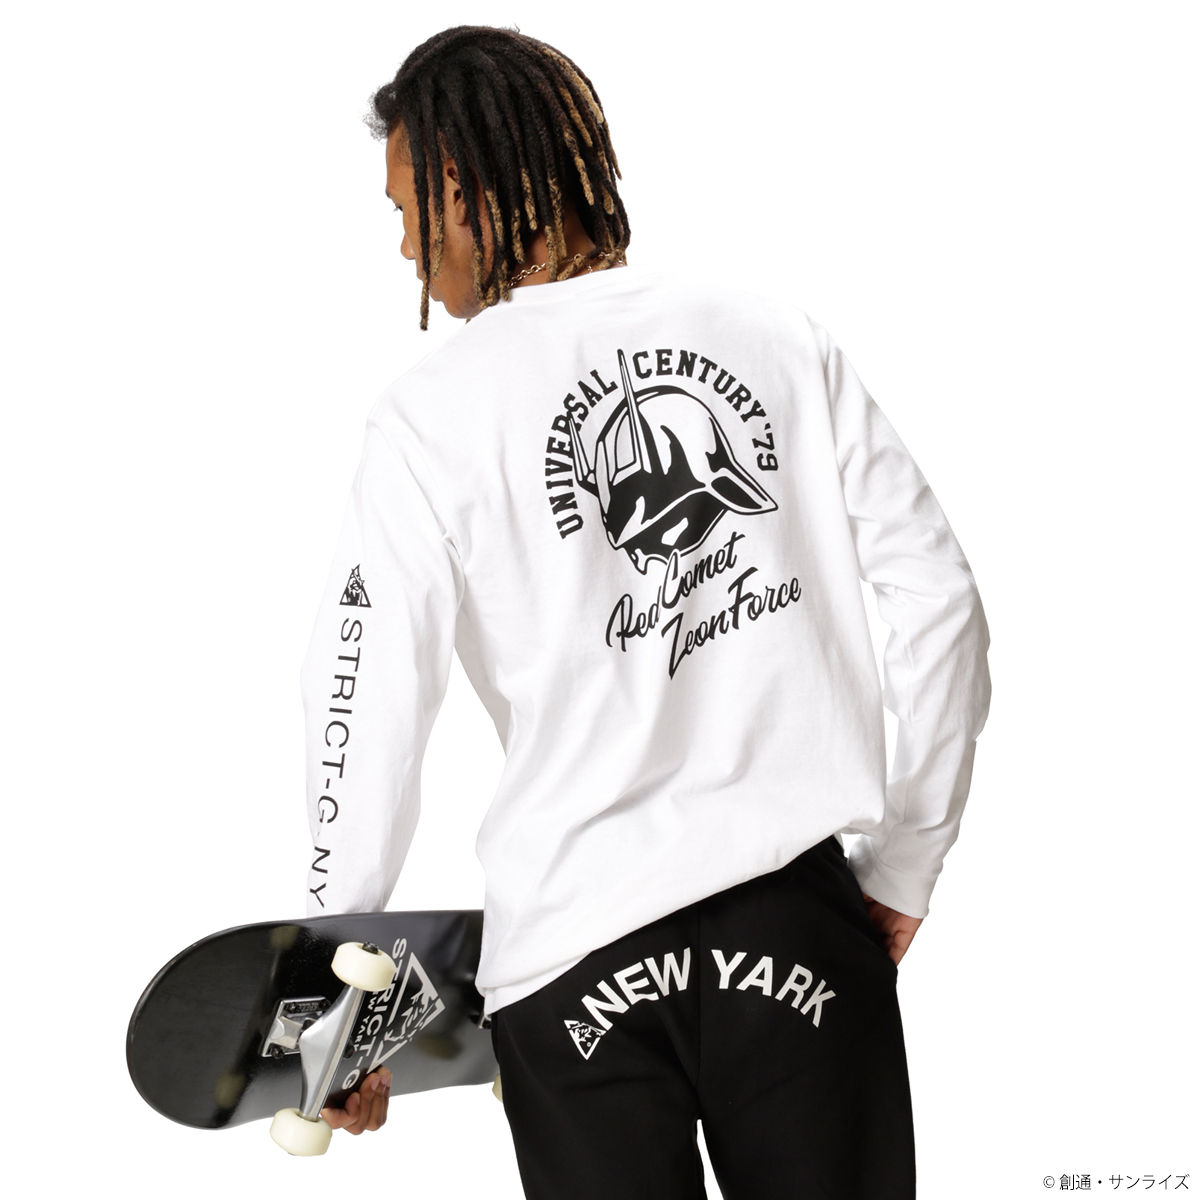 STRICT-G NEW YARK Red Comet Long-Sleeve T-shirt